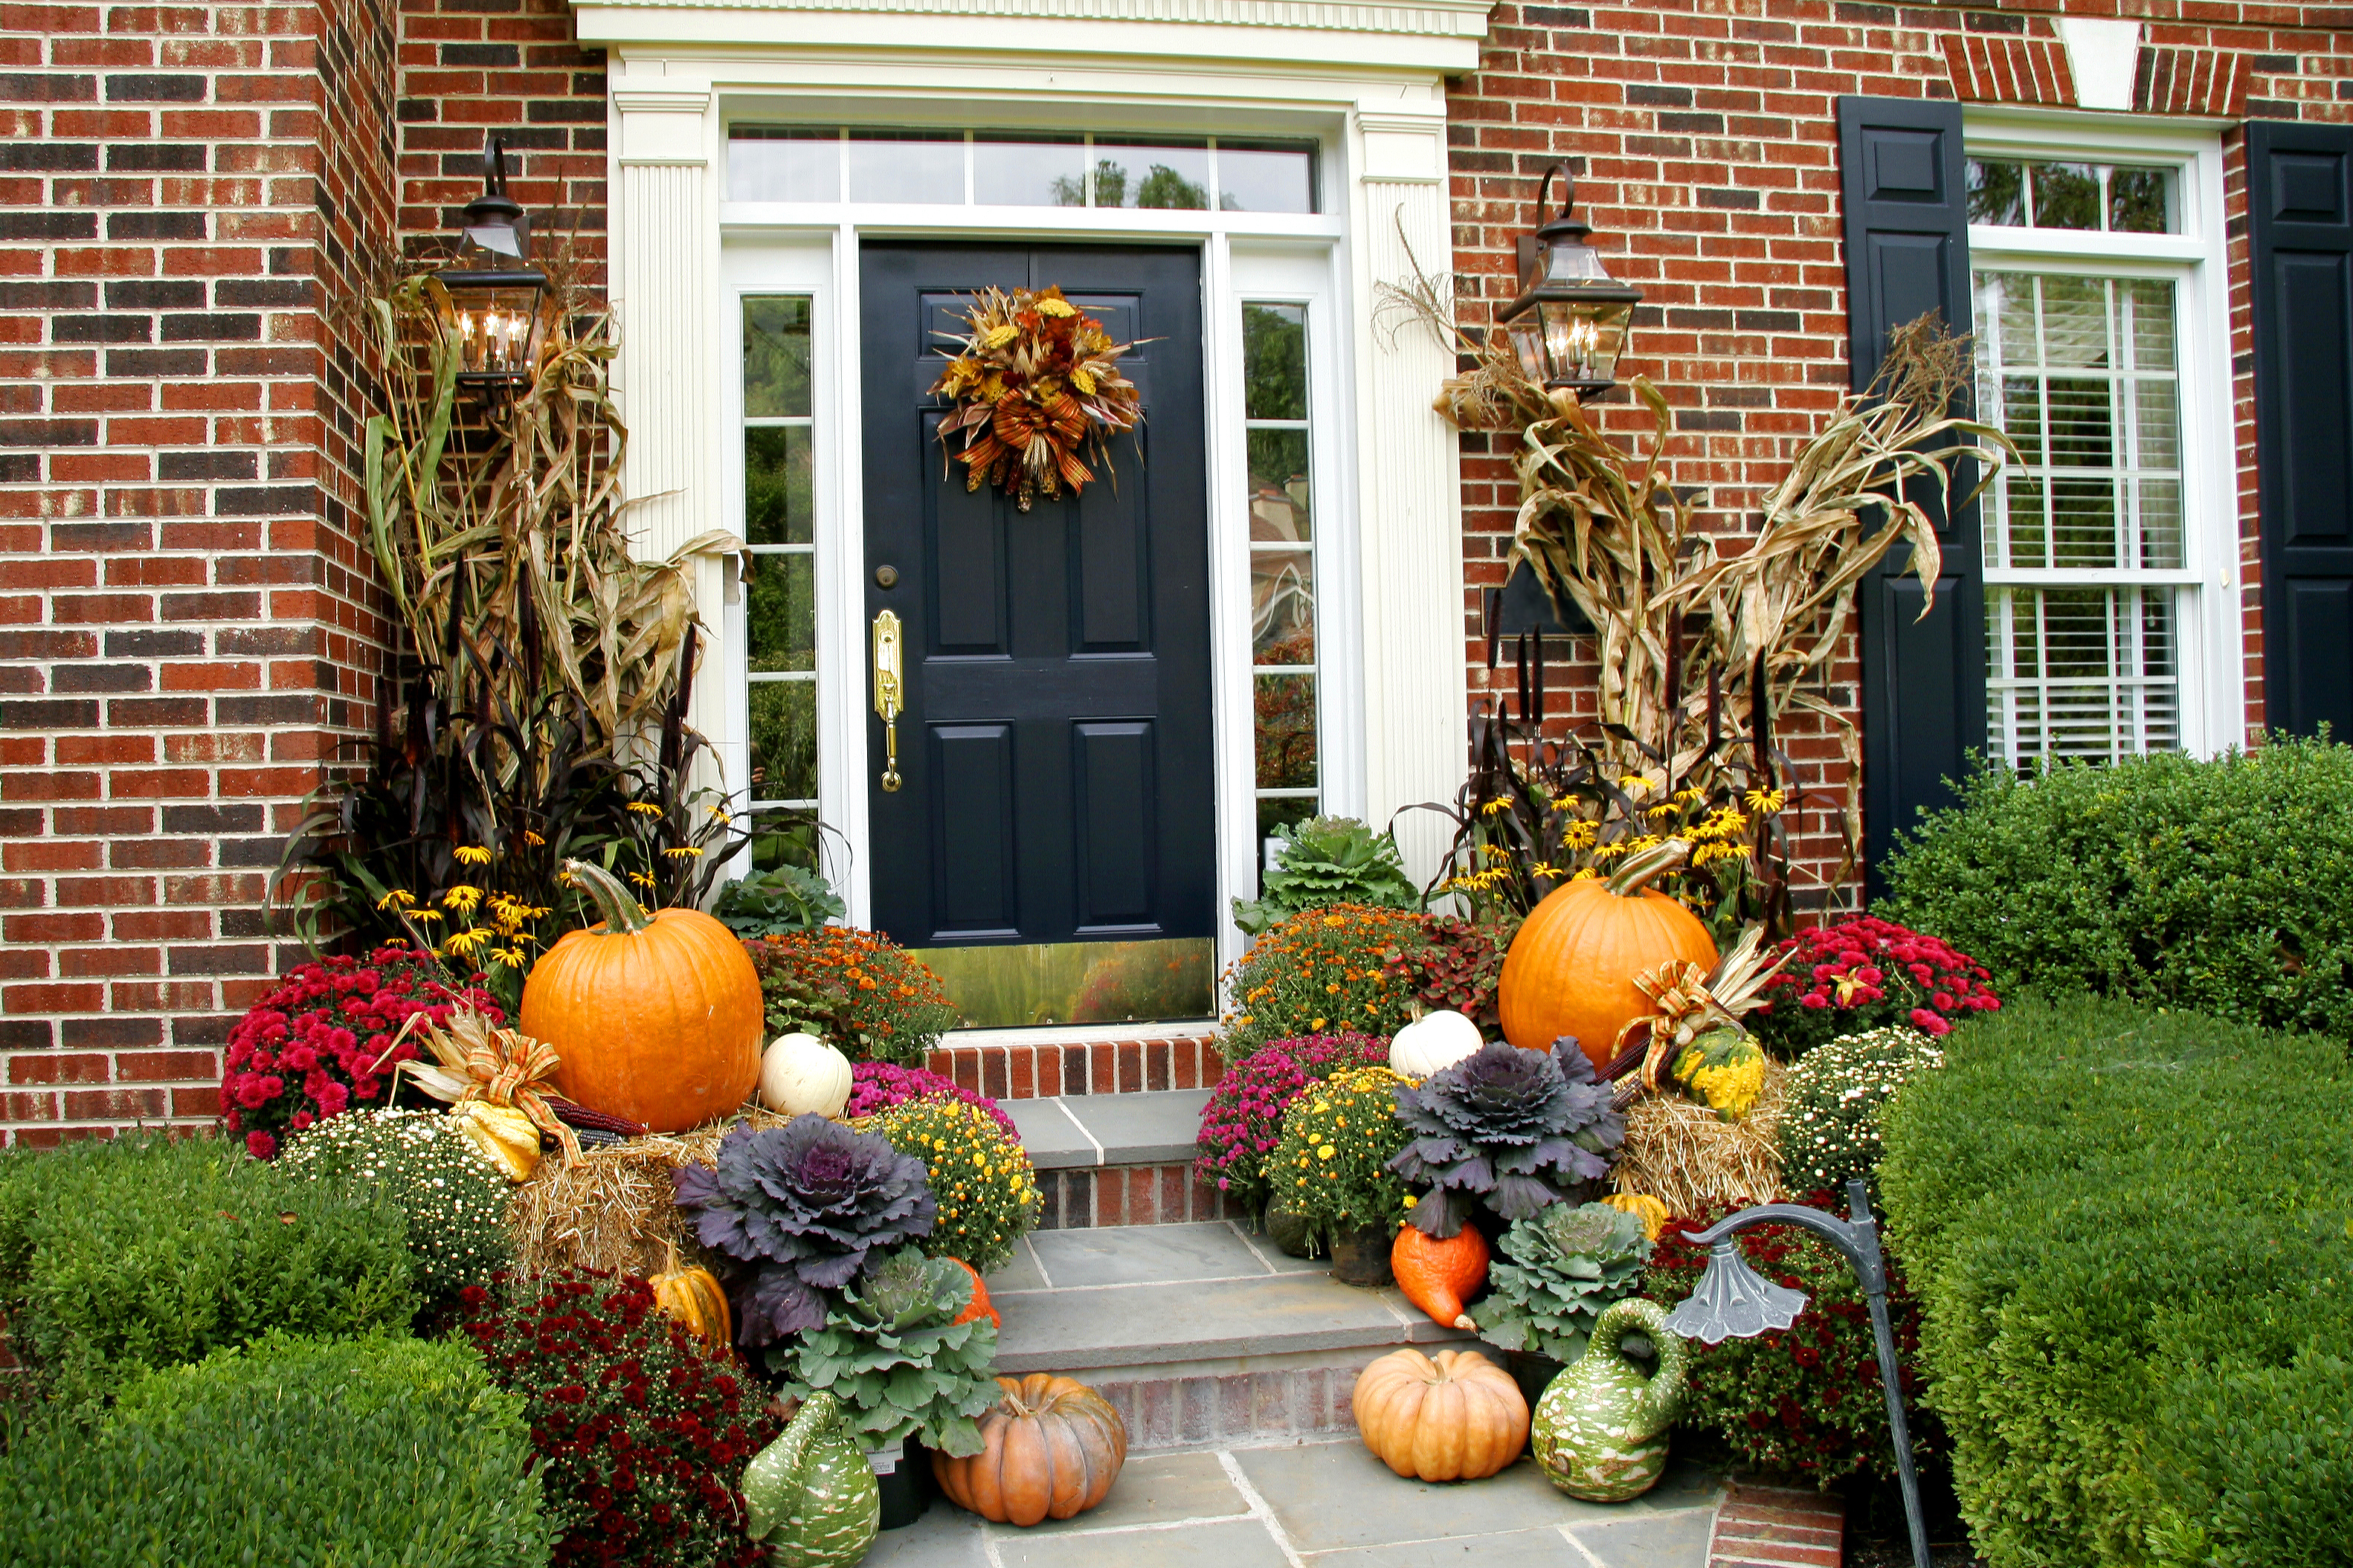 10 fall home decorating ideas - Fall Home Decor